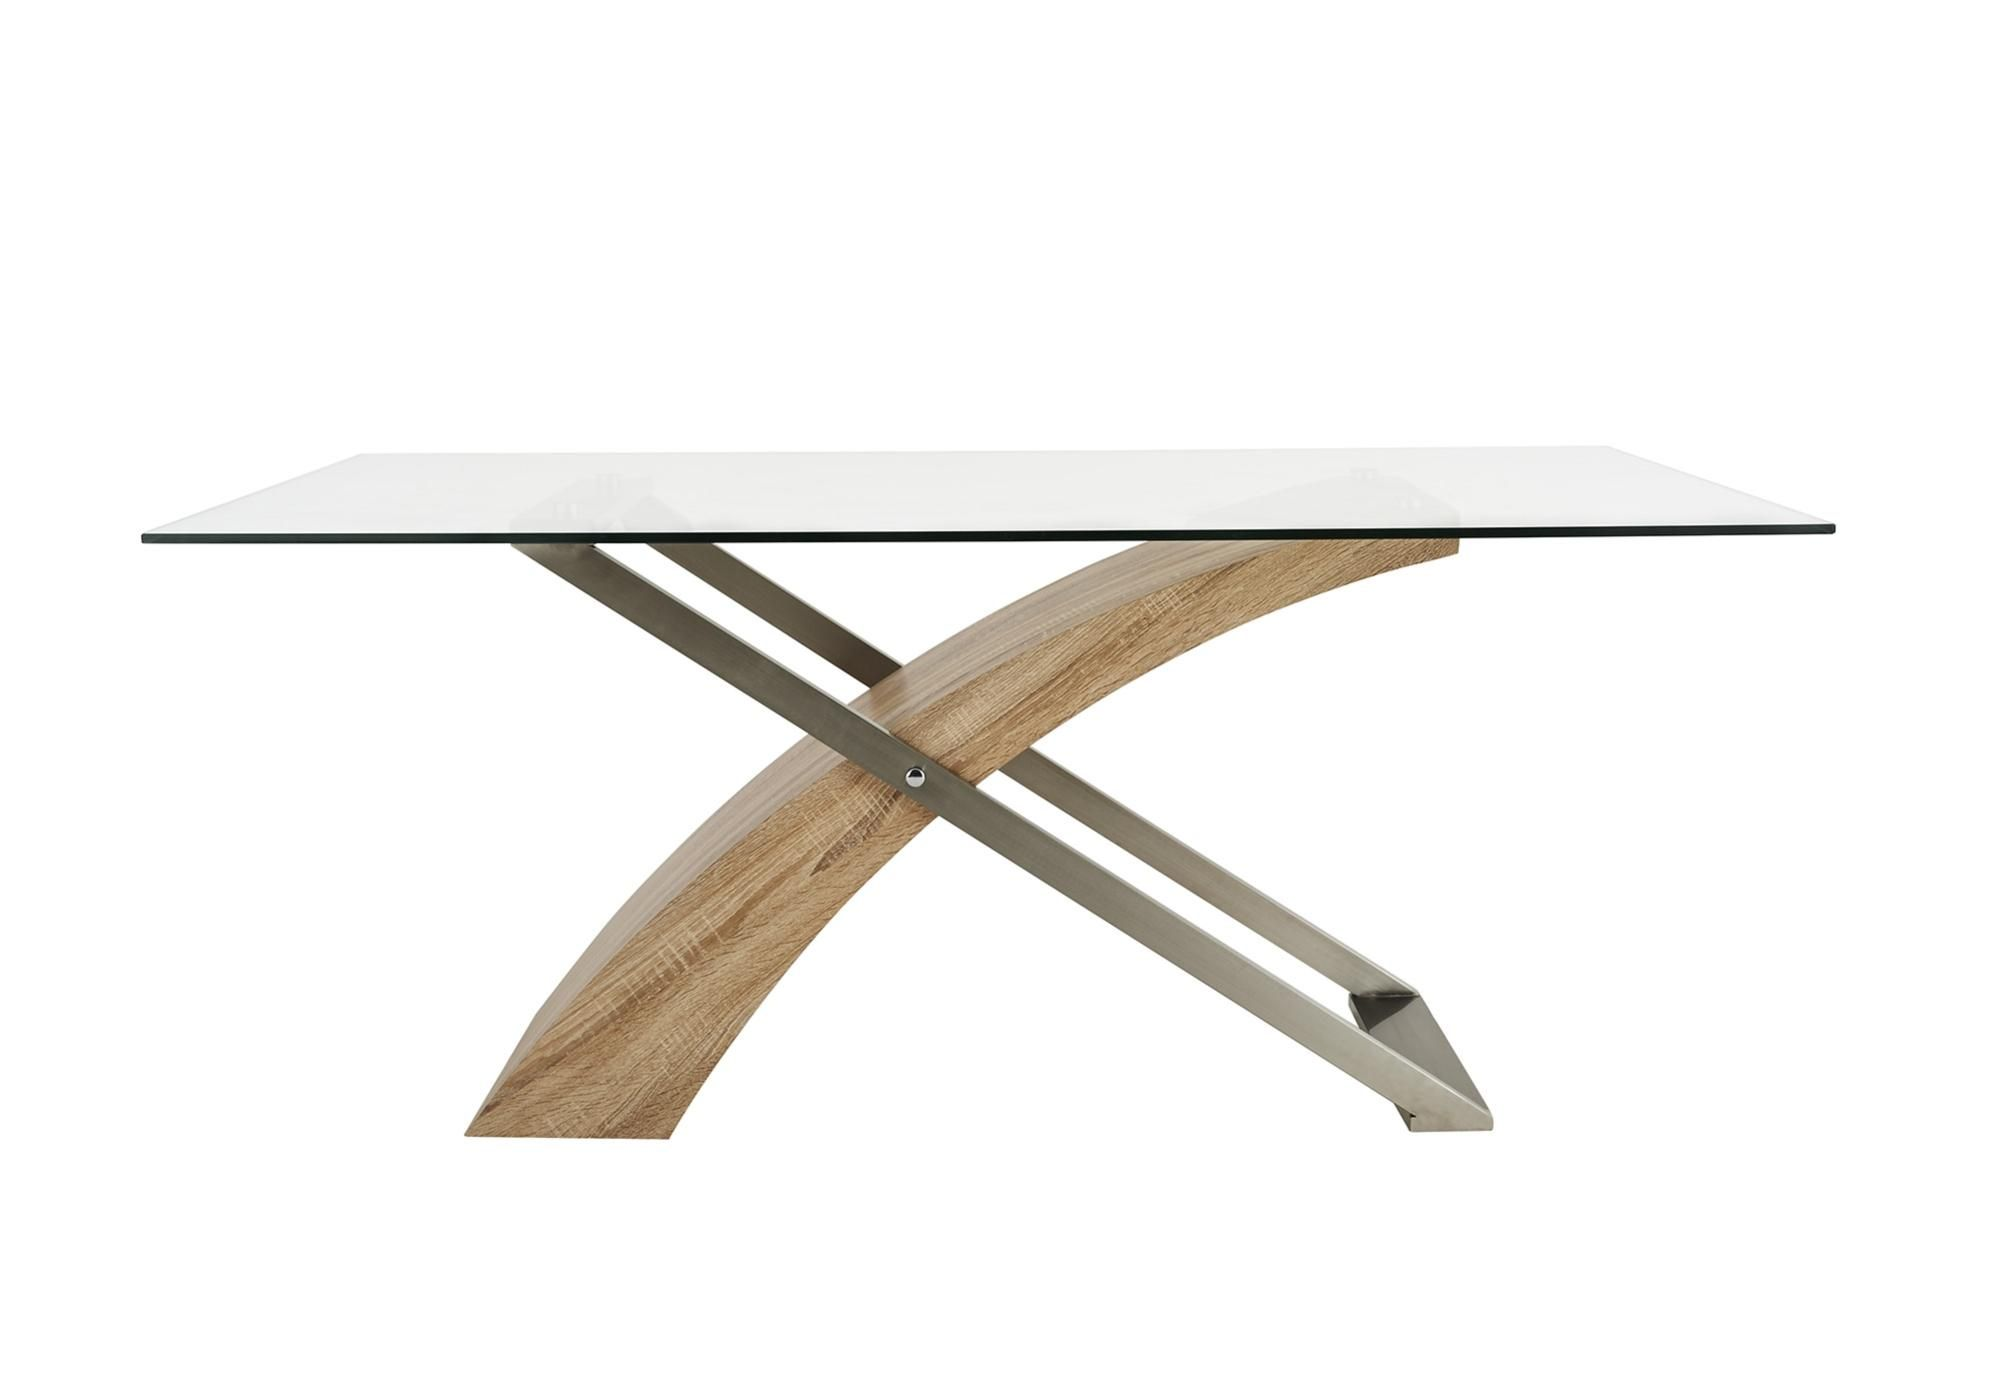 Glass Dining Table Evolution Dining Furniture from Furniture